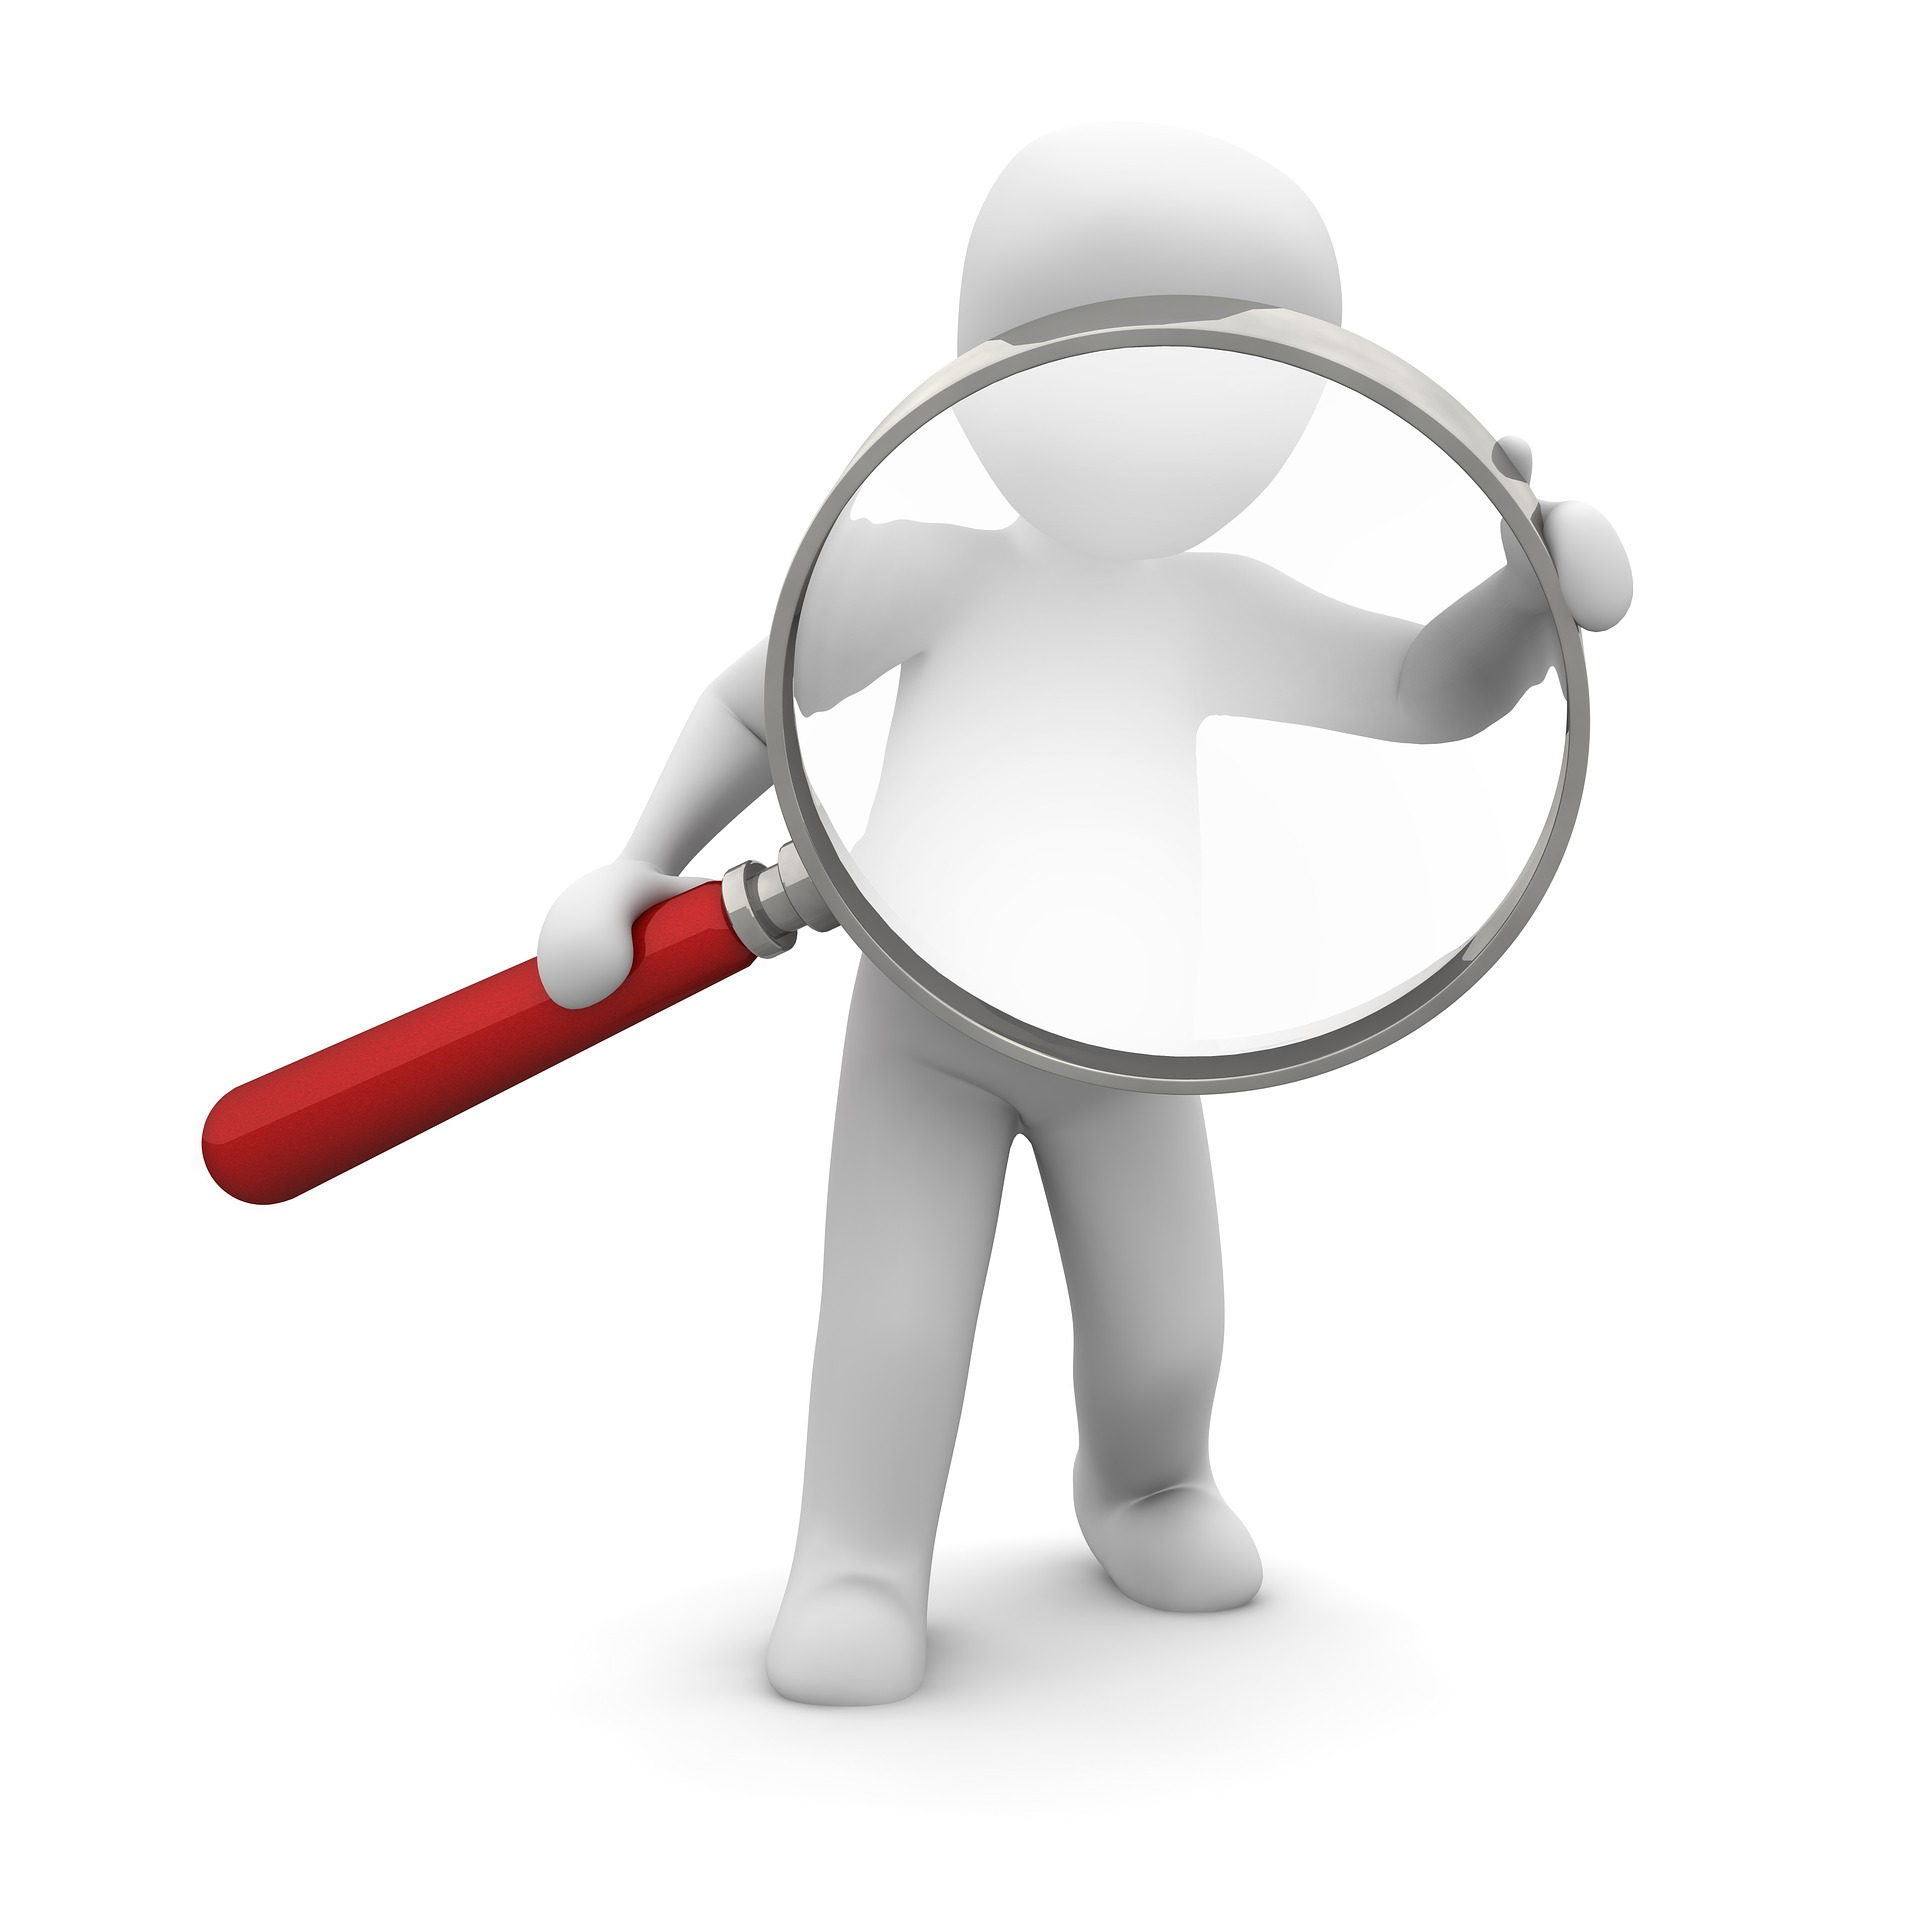 Five top tips for conducting workplace investigations